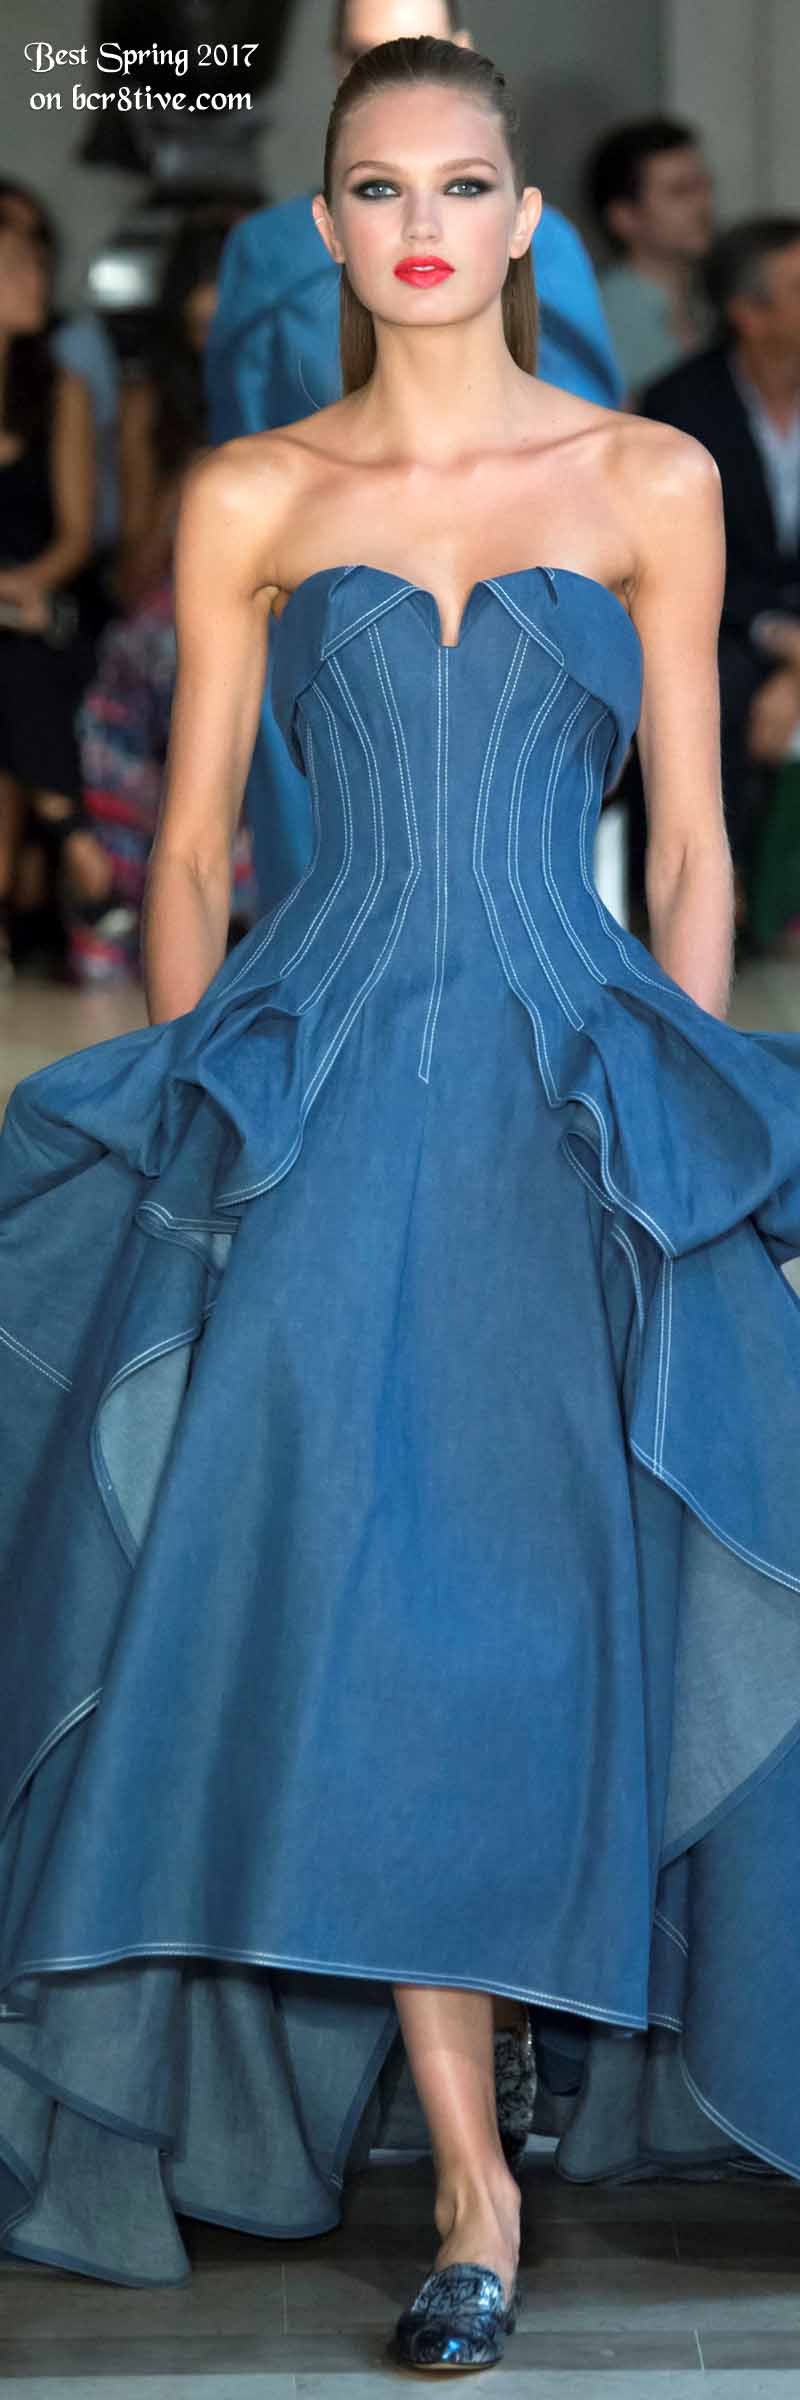 Carolina Herrera - The Best Looks from New York Fashion Week Spring 2017